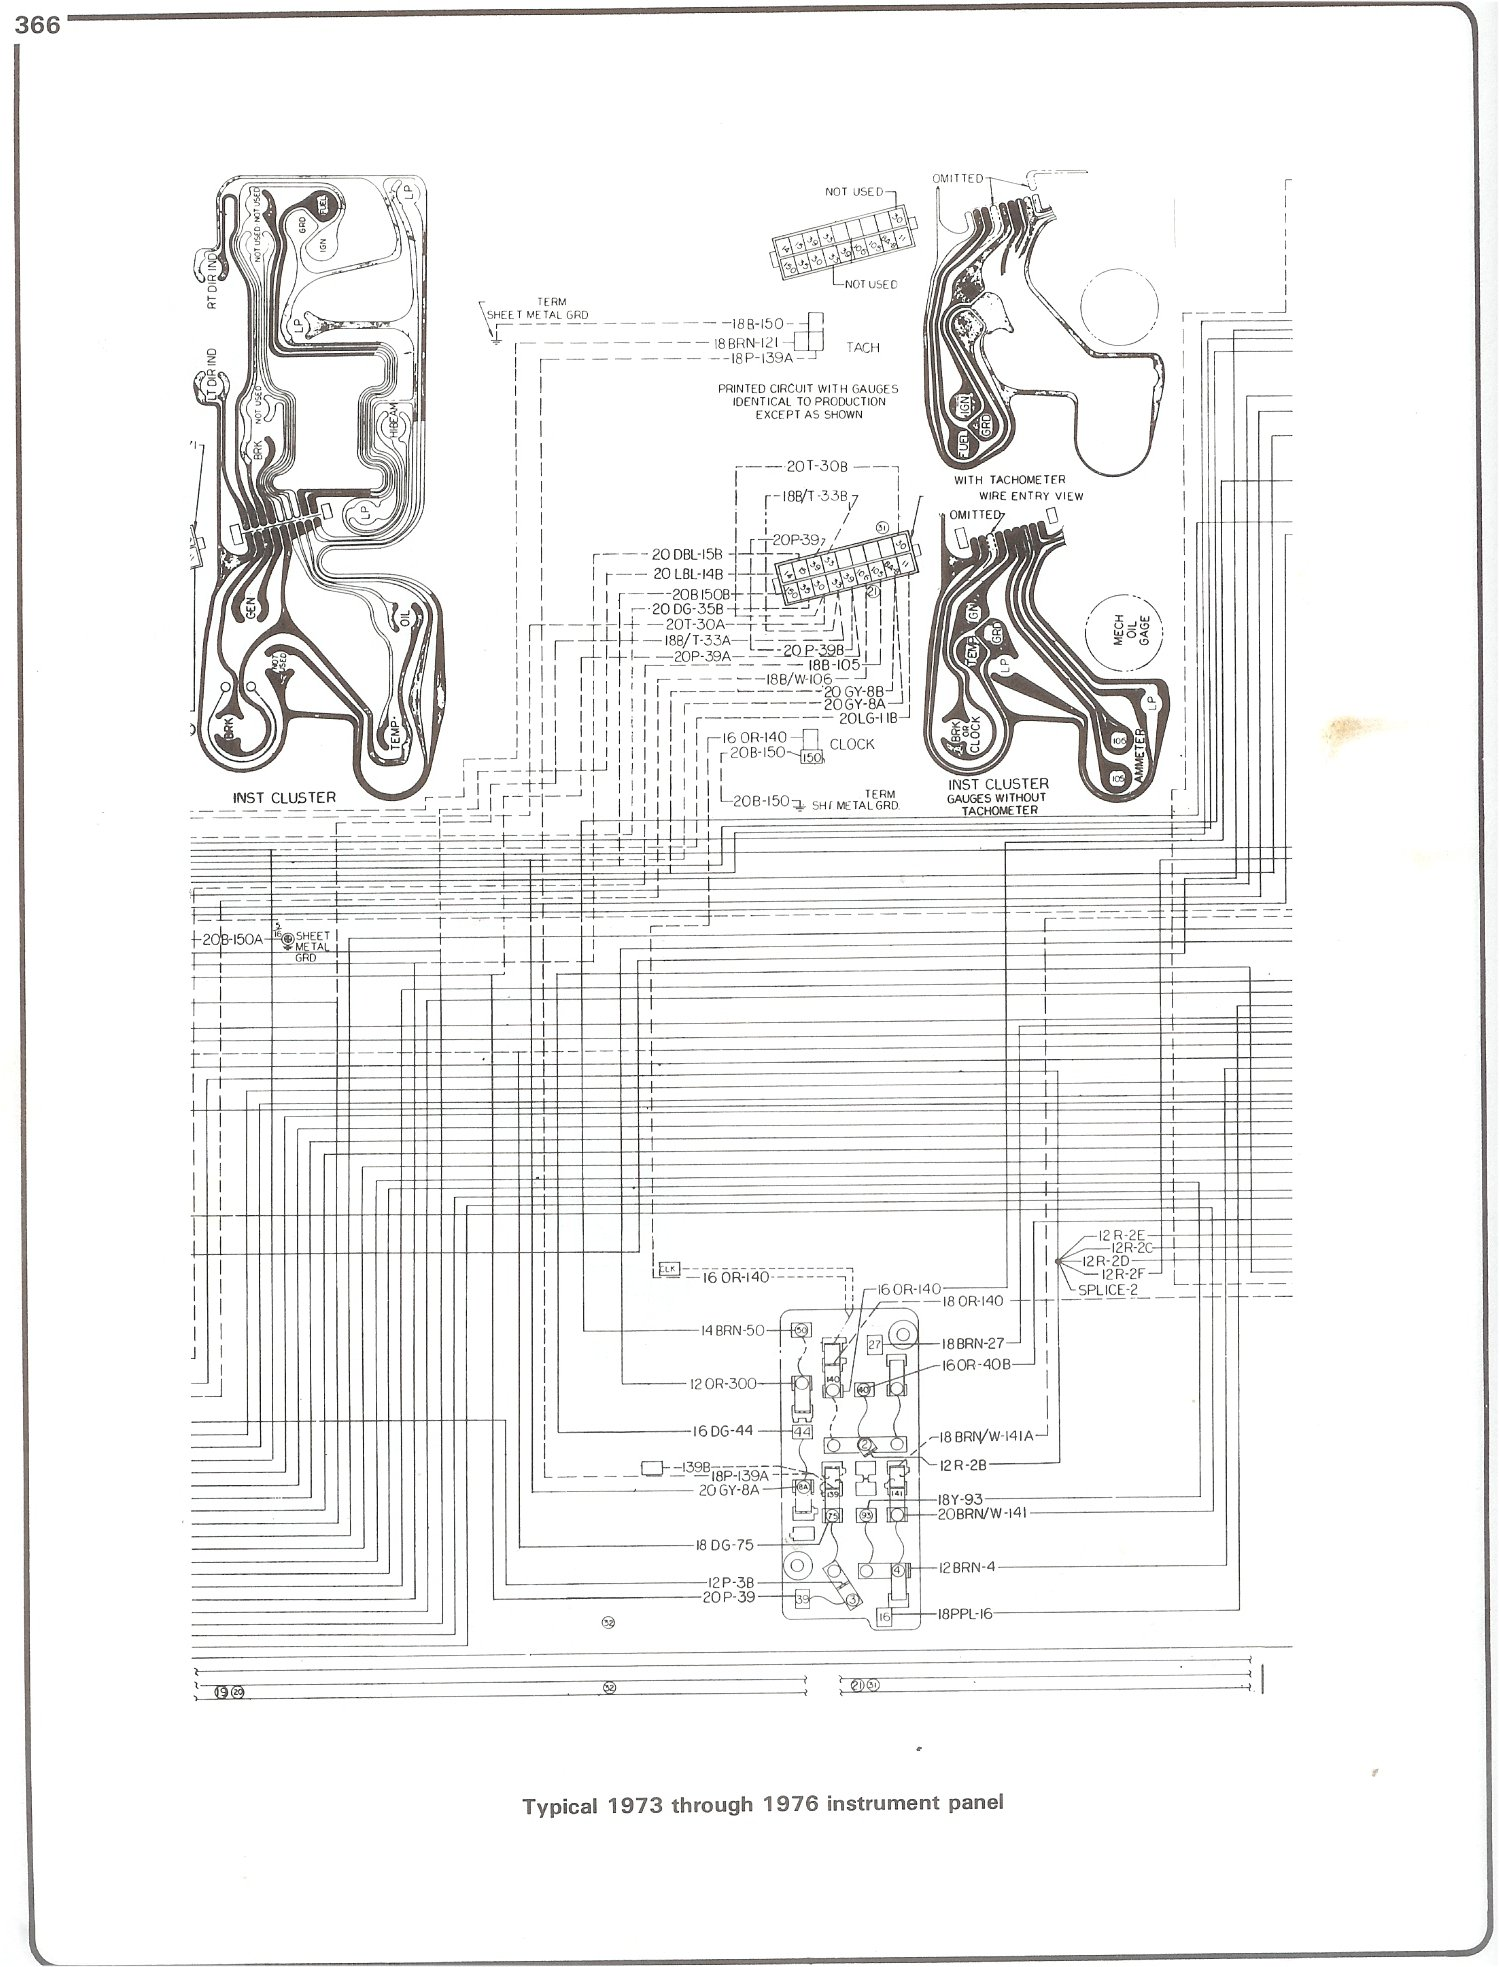 73 76_instrument complete 73 87 wiring diagrams 1978 Chevy C10 Wiring-Diagram at edmiracle.co